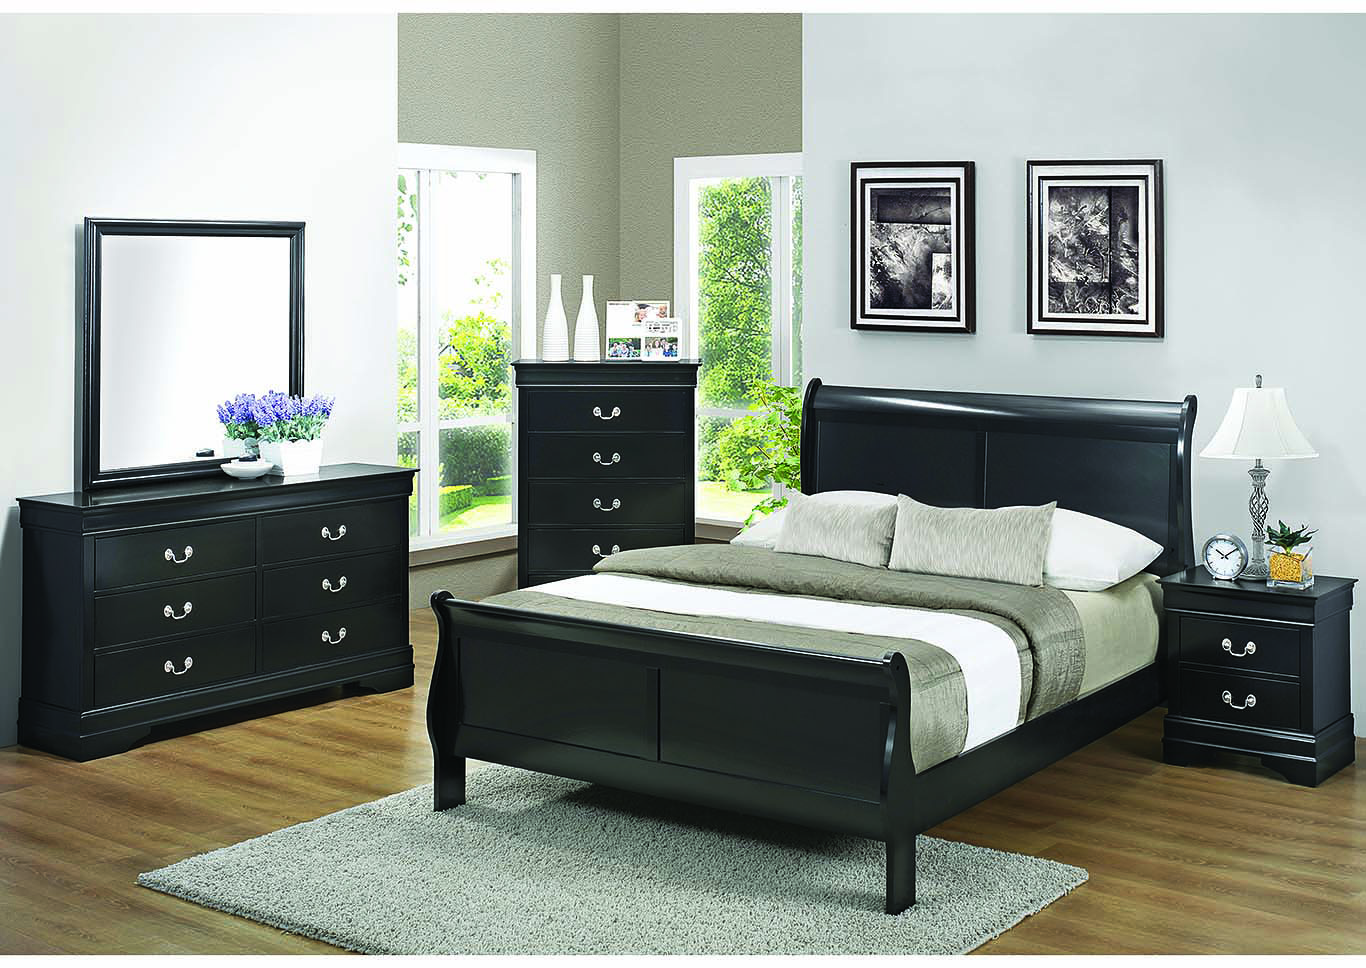 Louis Philippe Black Full Sleigh Bed w/Dresser, Mirror, Chest and Nightstand,Coaster Furniture